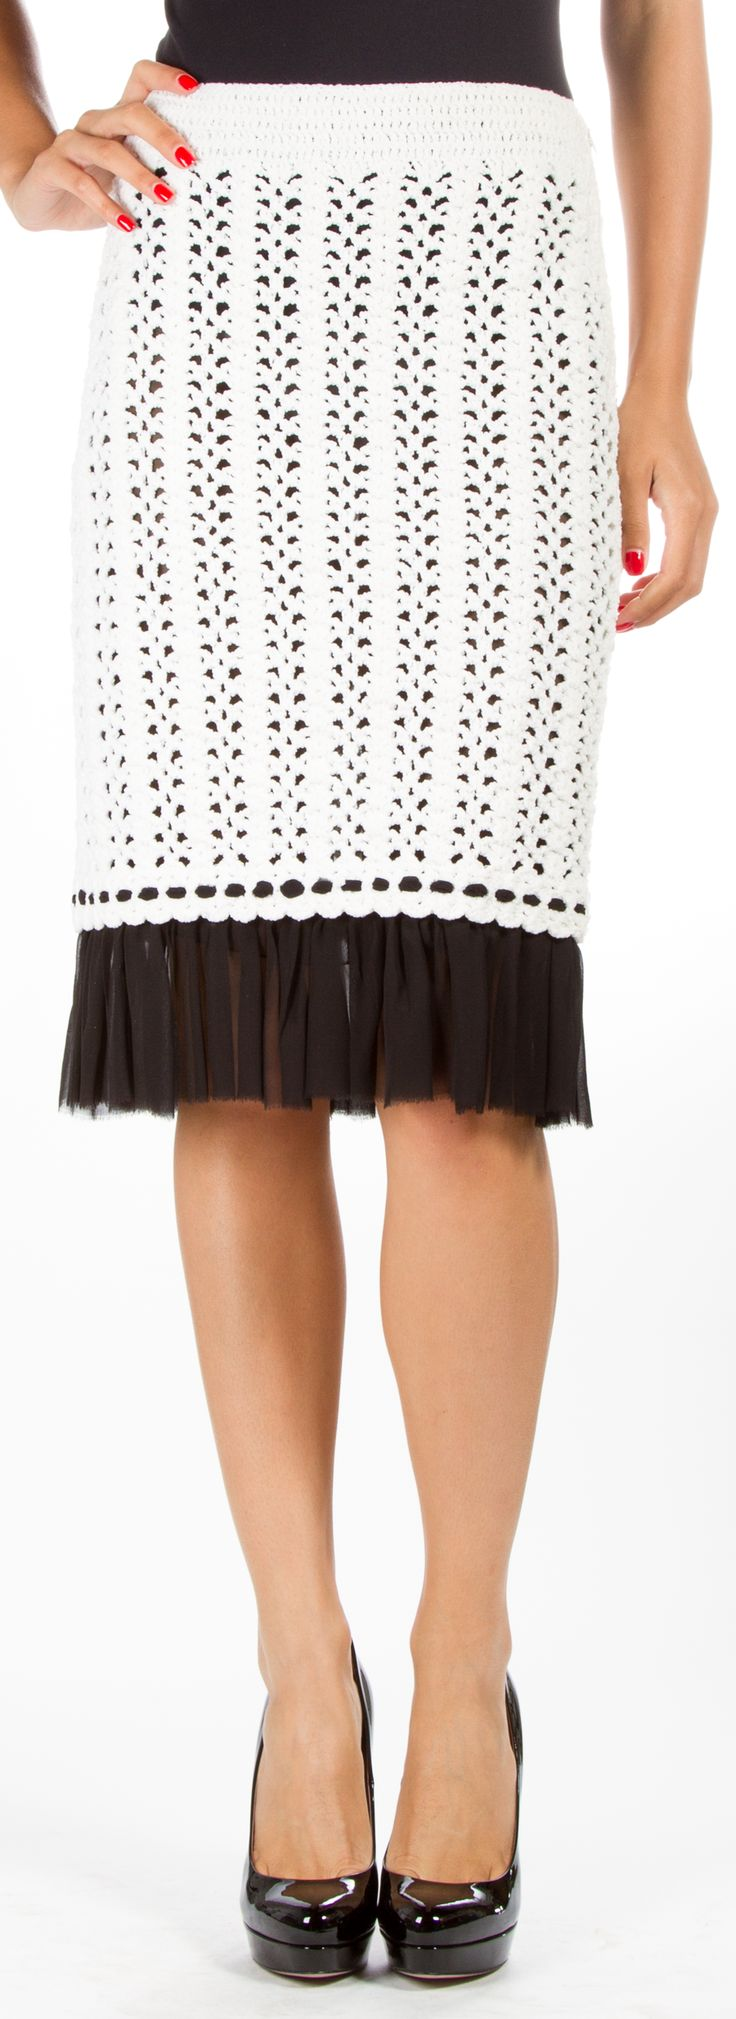 Chanel Skirt. Tassels!!